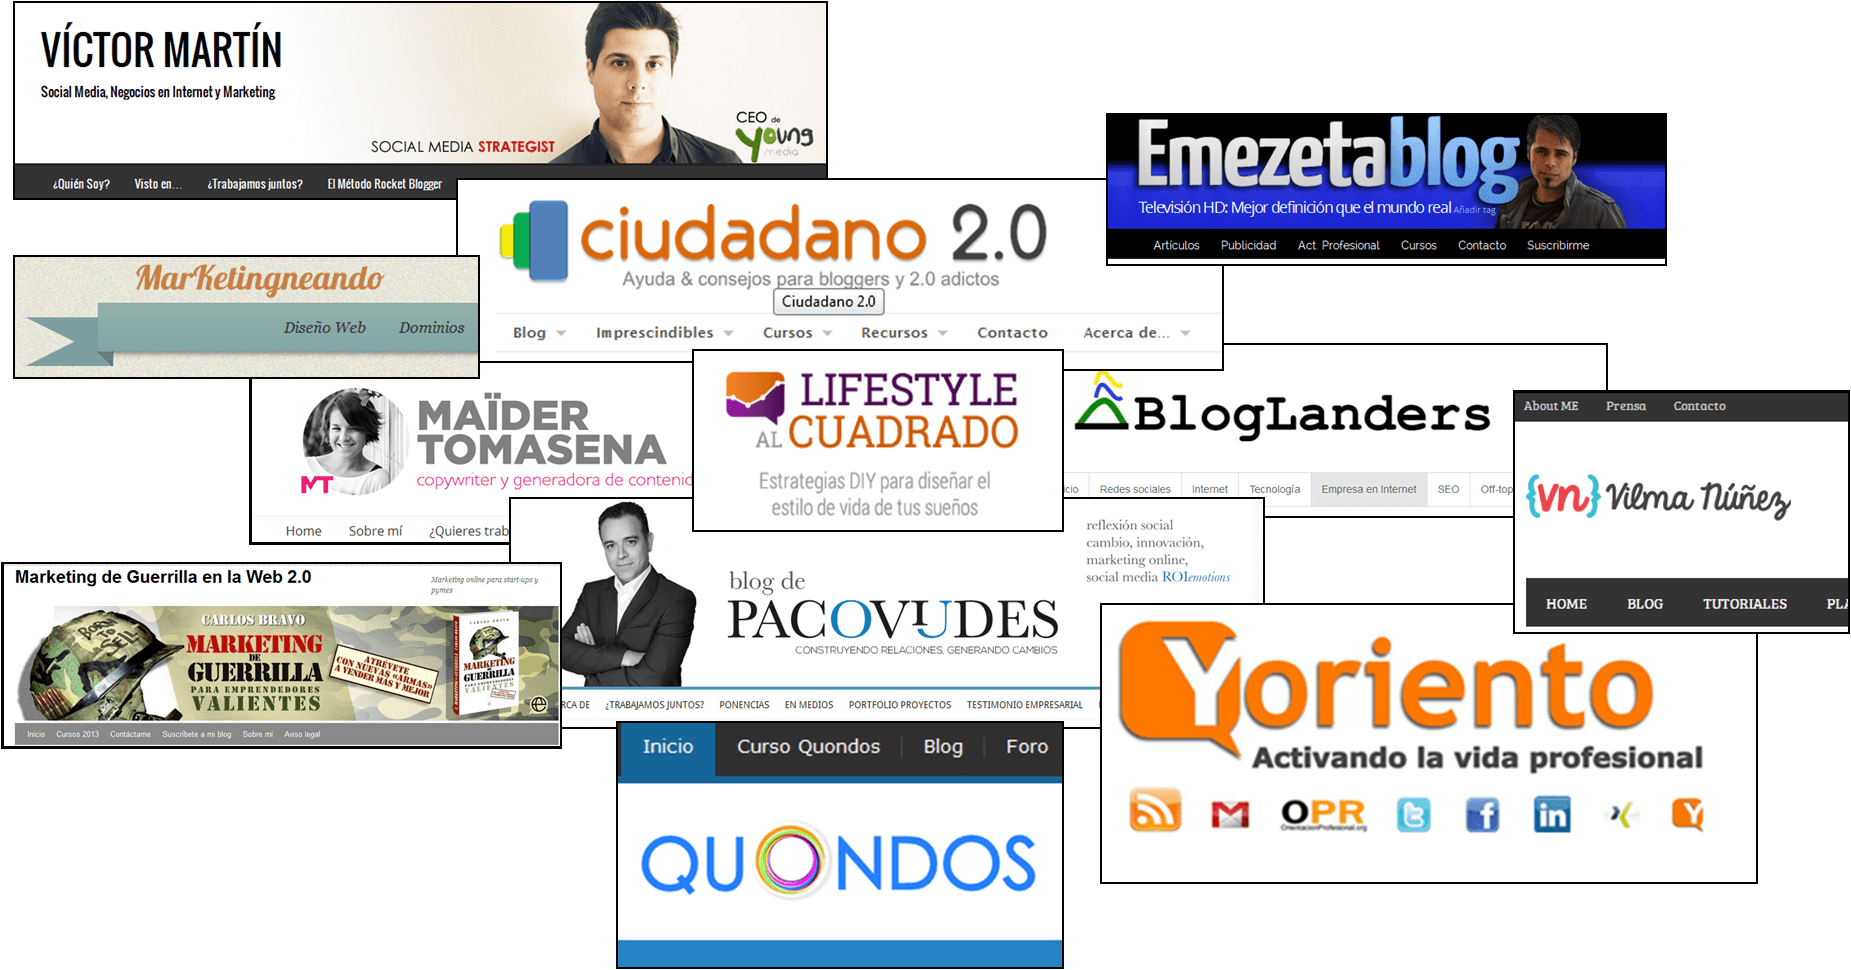 Los 13 mejores post de SEO, marketing digital y social media